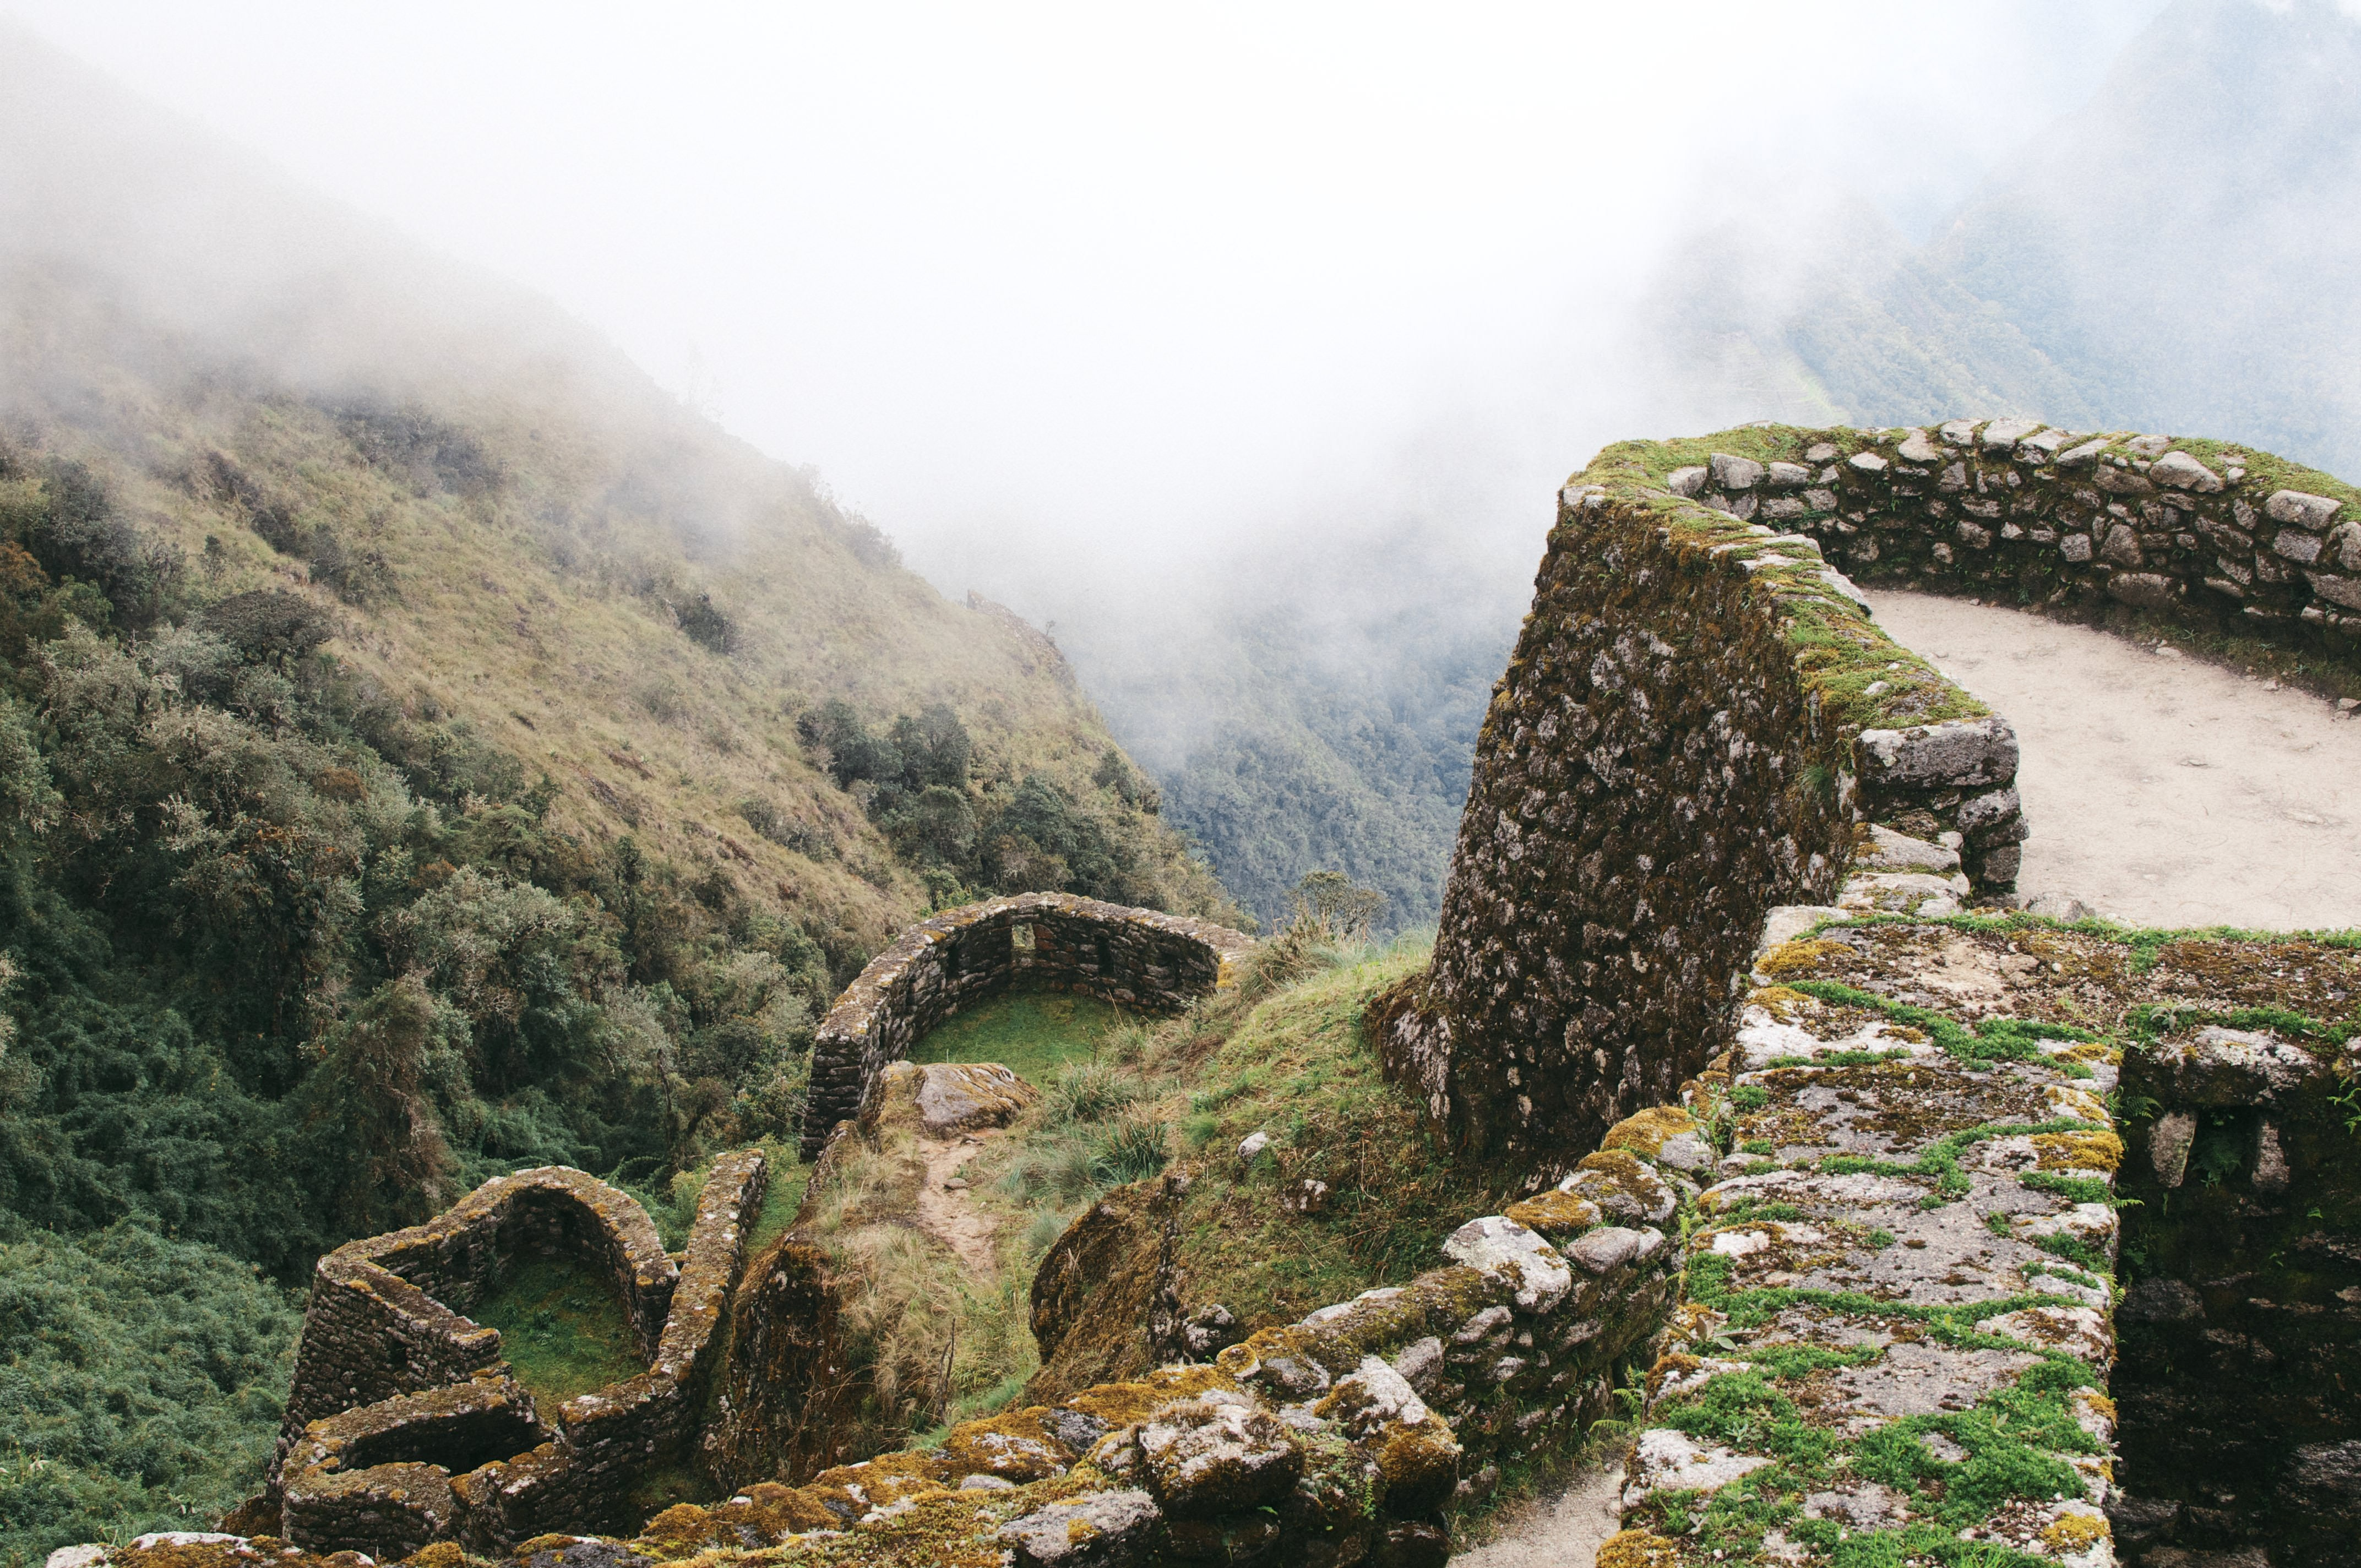 Rocky Inca ruins covered in moss on a misty mountain